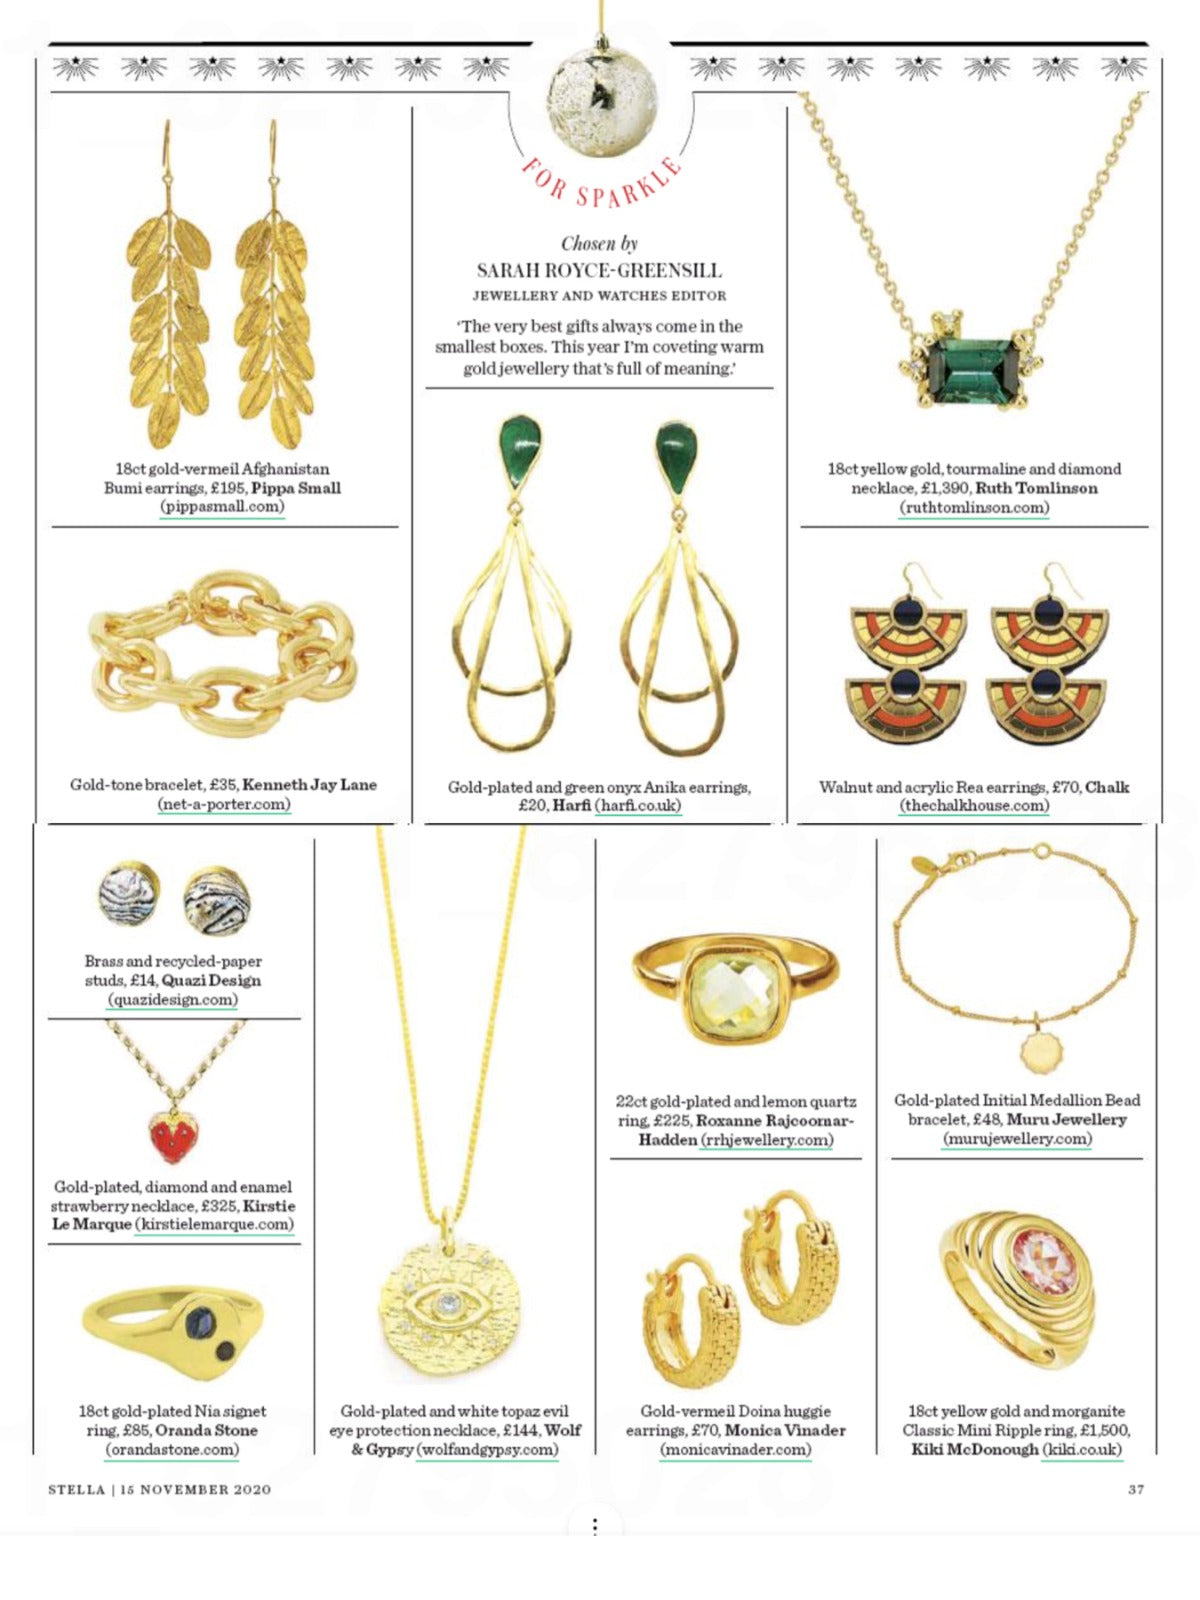 RRH Jewellery featured in Stella Magazine